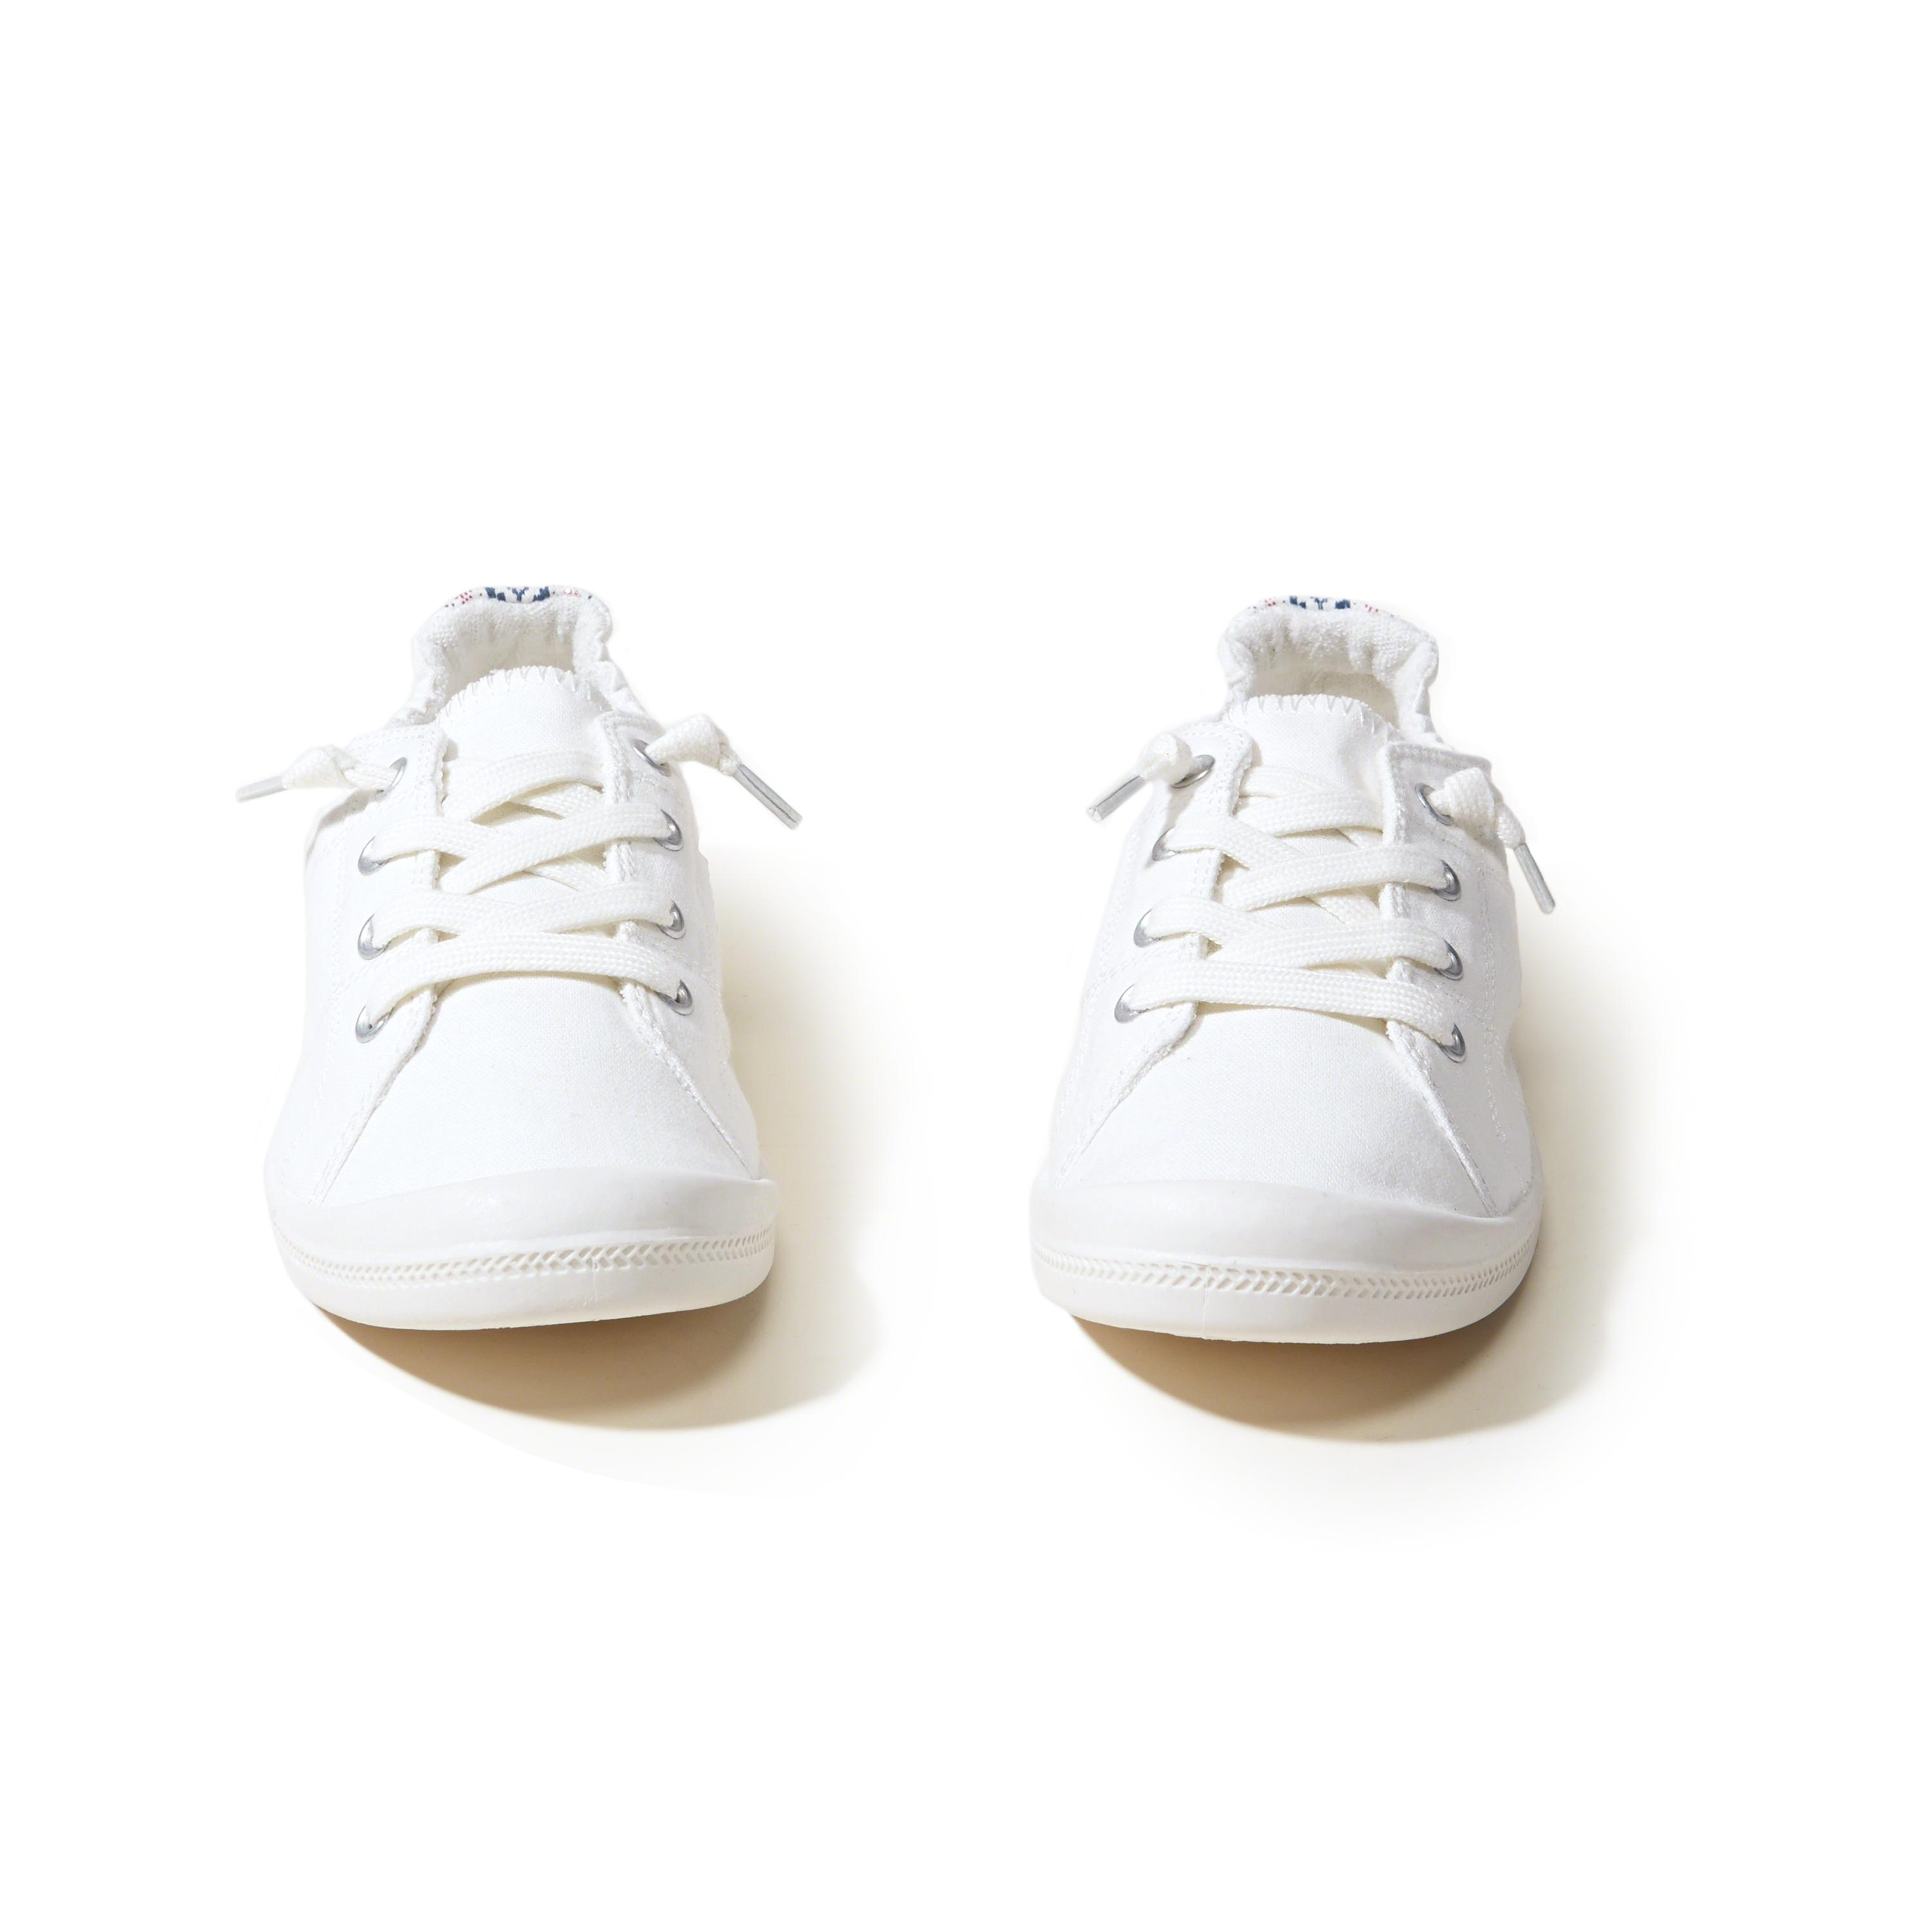 9e885e49893 Pictures of Hollister Shoes For Girls - kidskunst.info